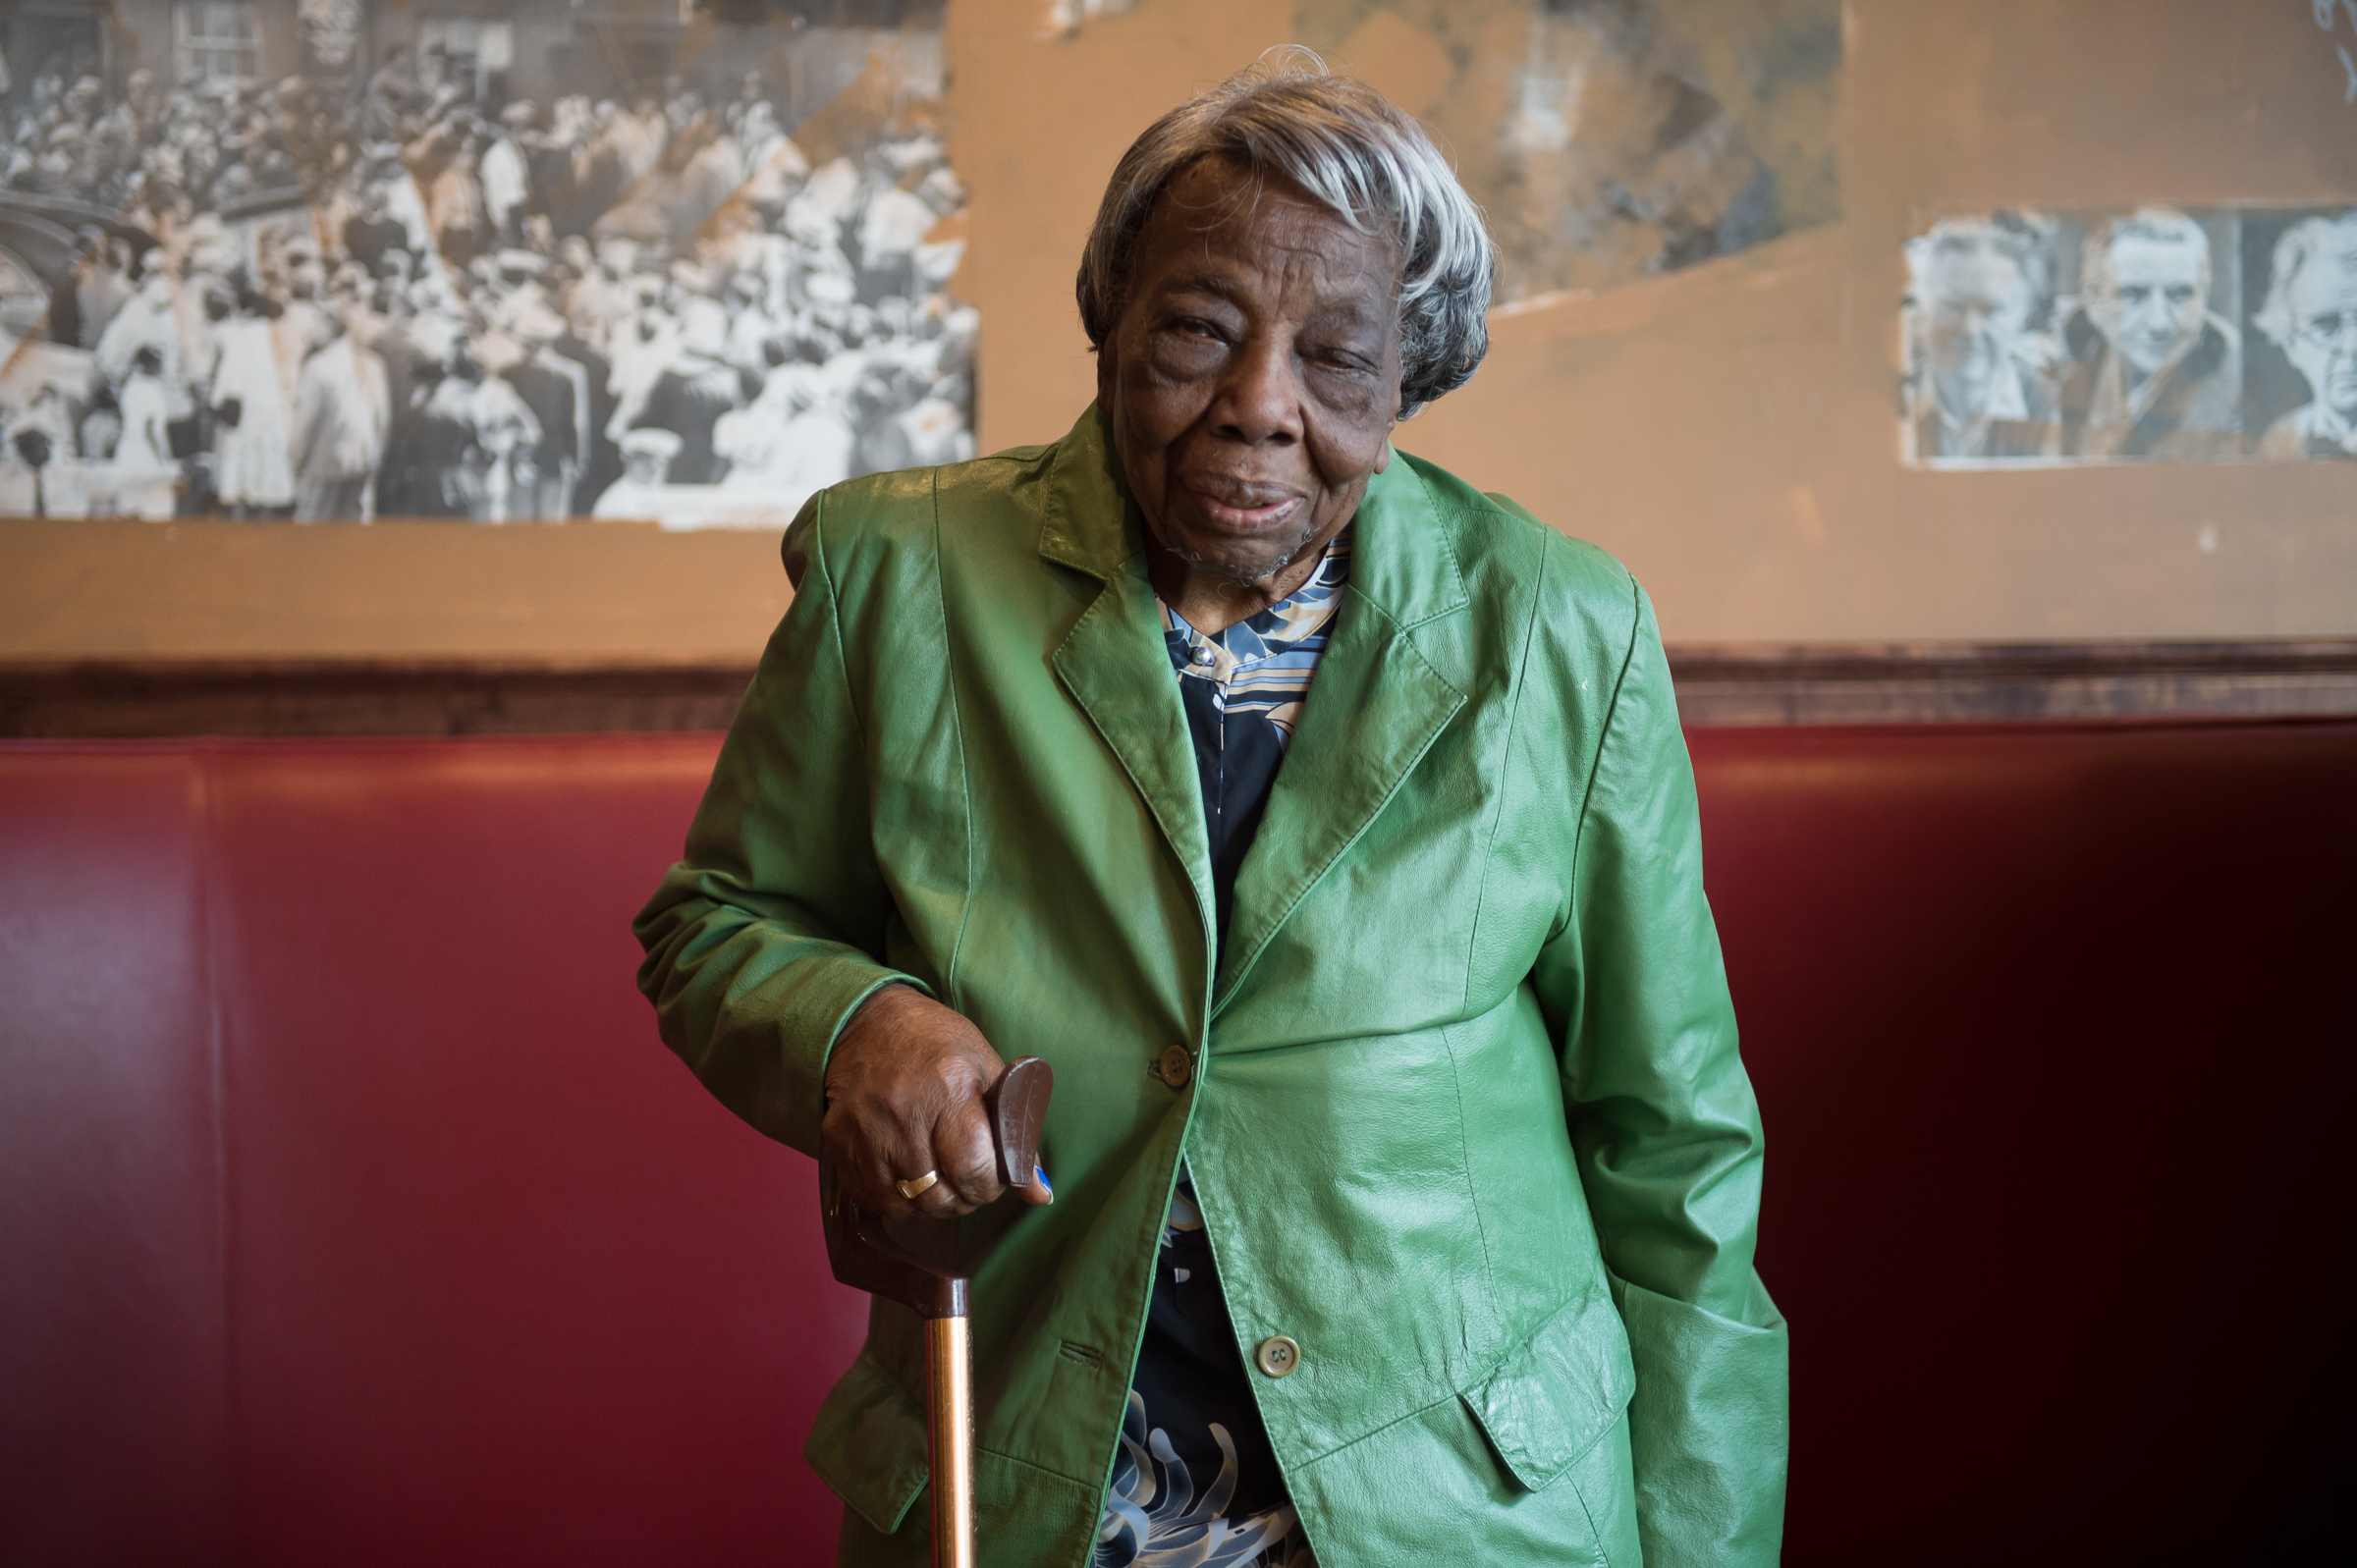 106 year-old Virginia McLaurin in Busboys and Poets on Feb 22, 2016 in Washington, DC.